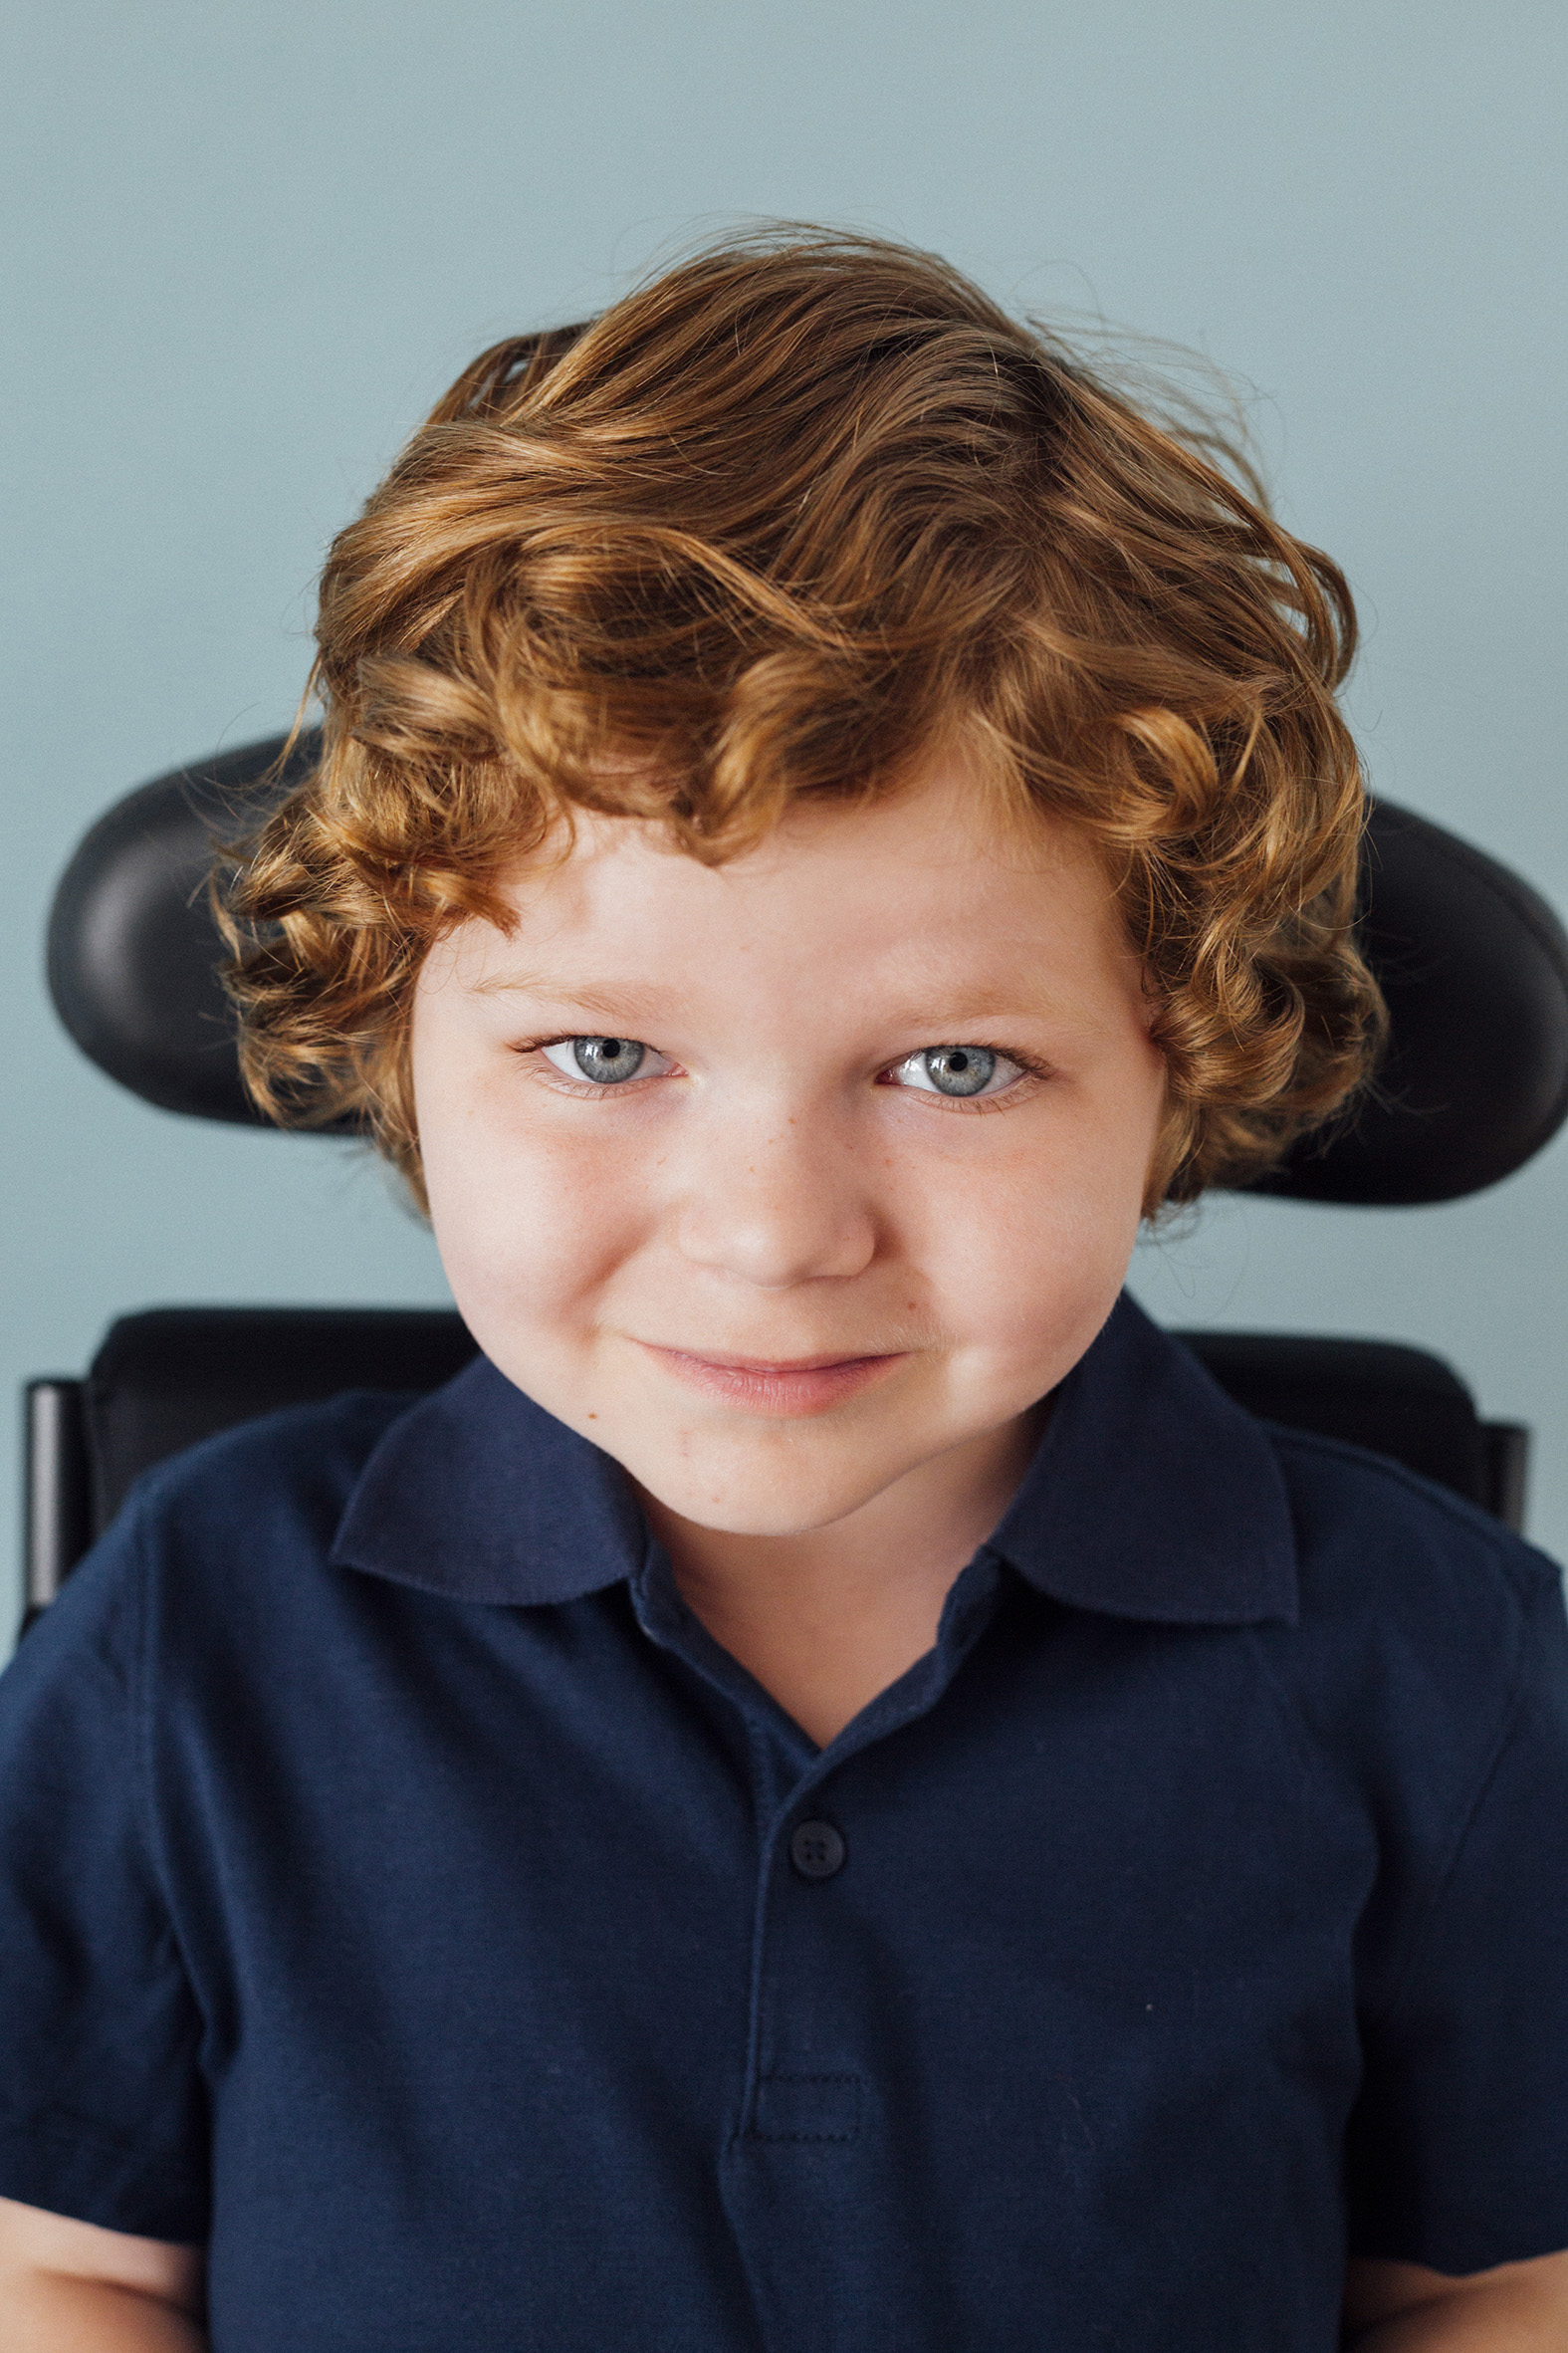 Stanley, Congenital Muscular Dystrophy, Zebedee Management, disabled, model agency, disability, boy